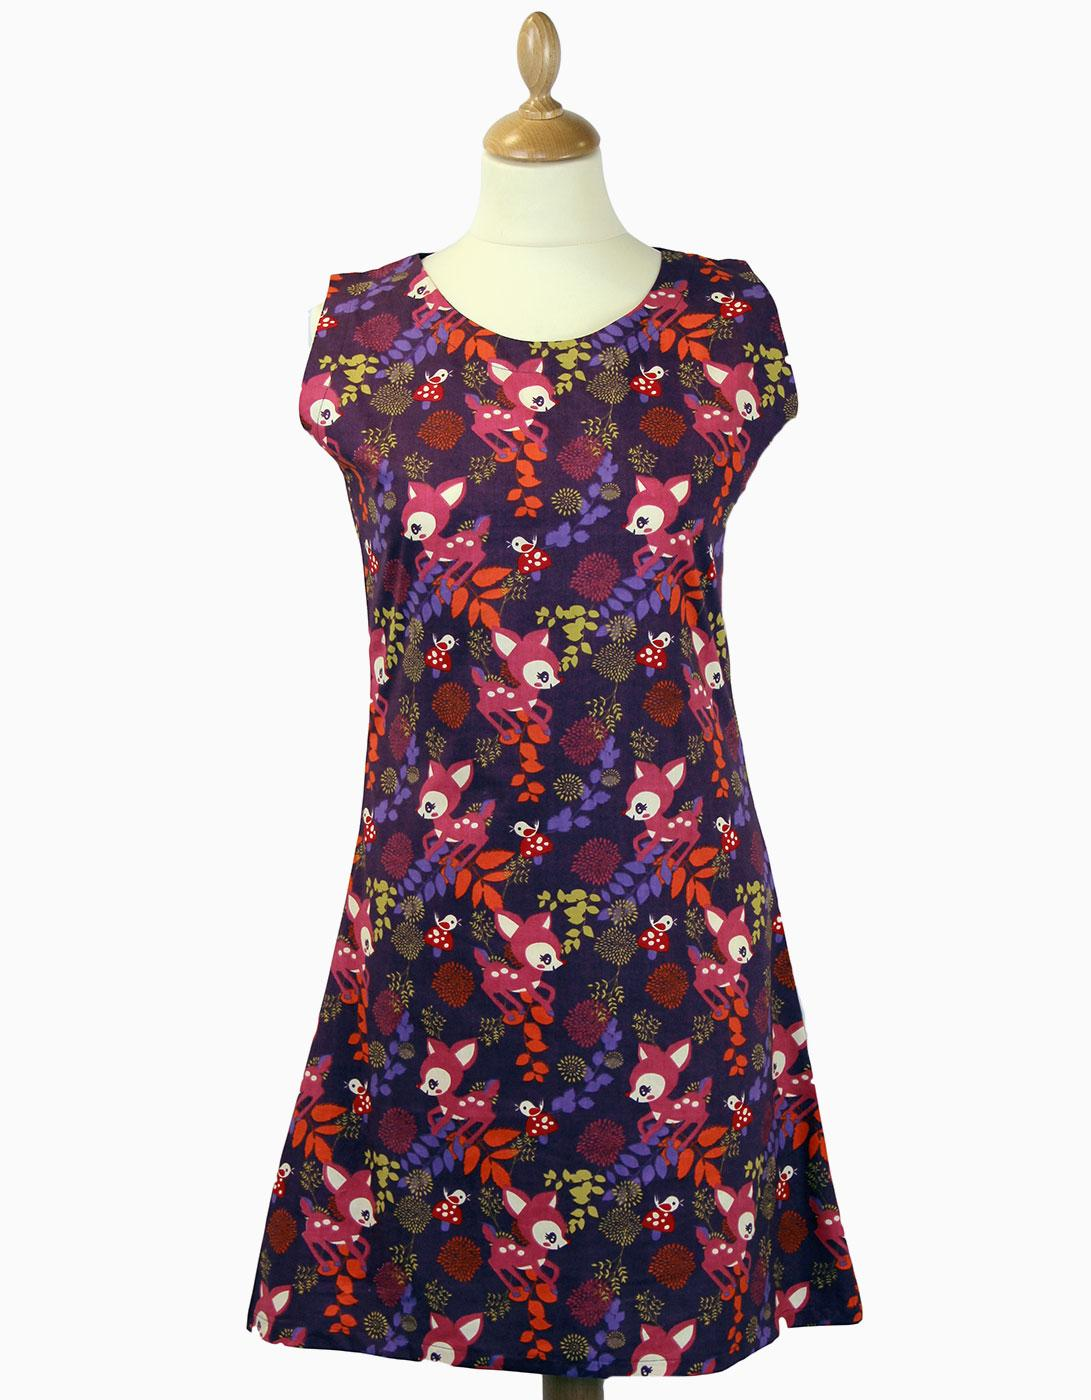 Woodland Trip Retro 60s Vintage Summer Shift Dress